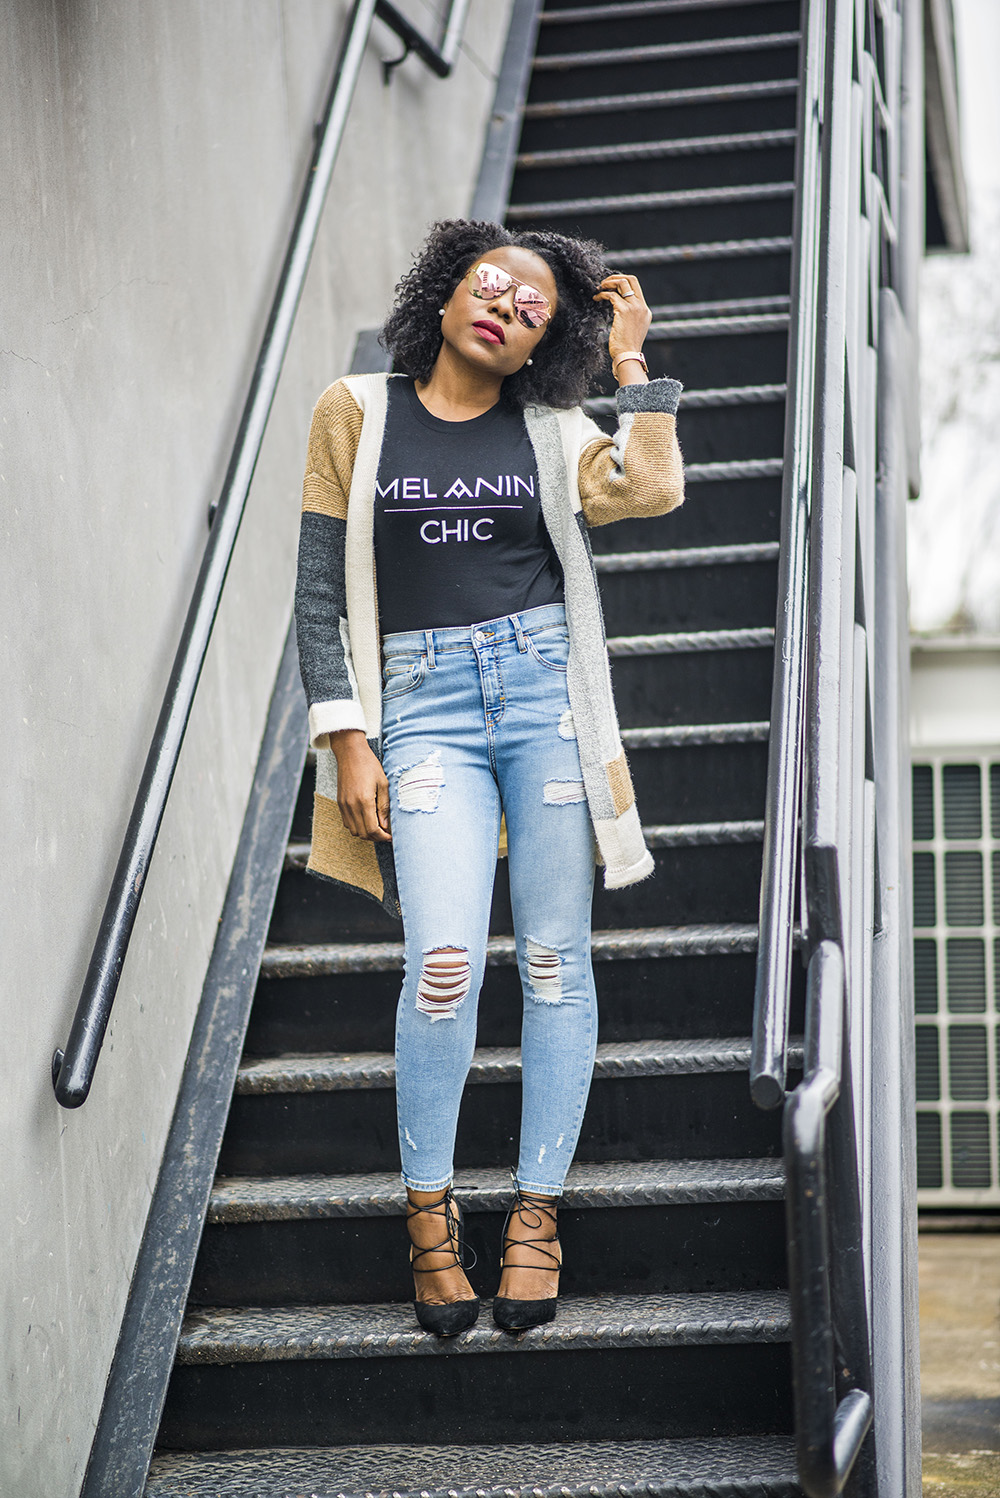 How to stylishly wear  t-shirt and jeans